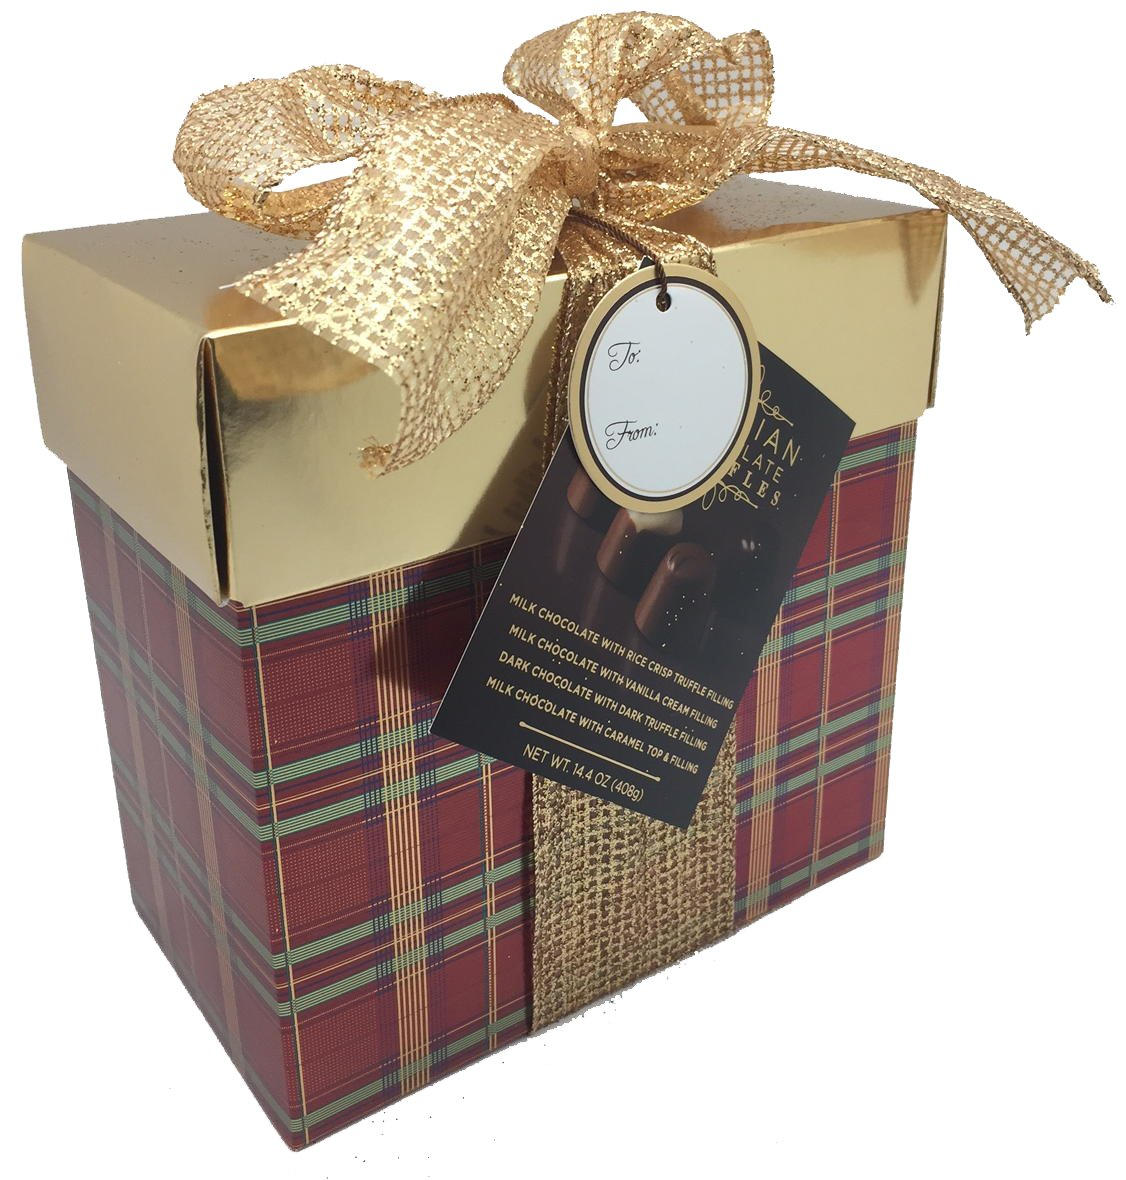 Amazon.com : Belgian Chocolate Truffles in Gold and Plaid Box ...